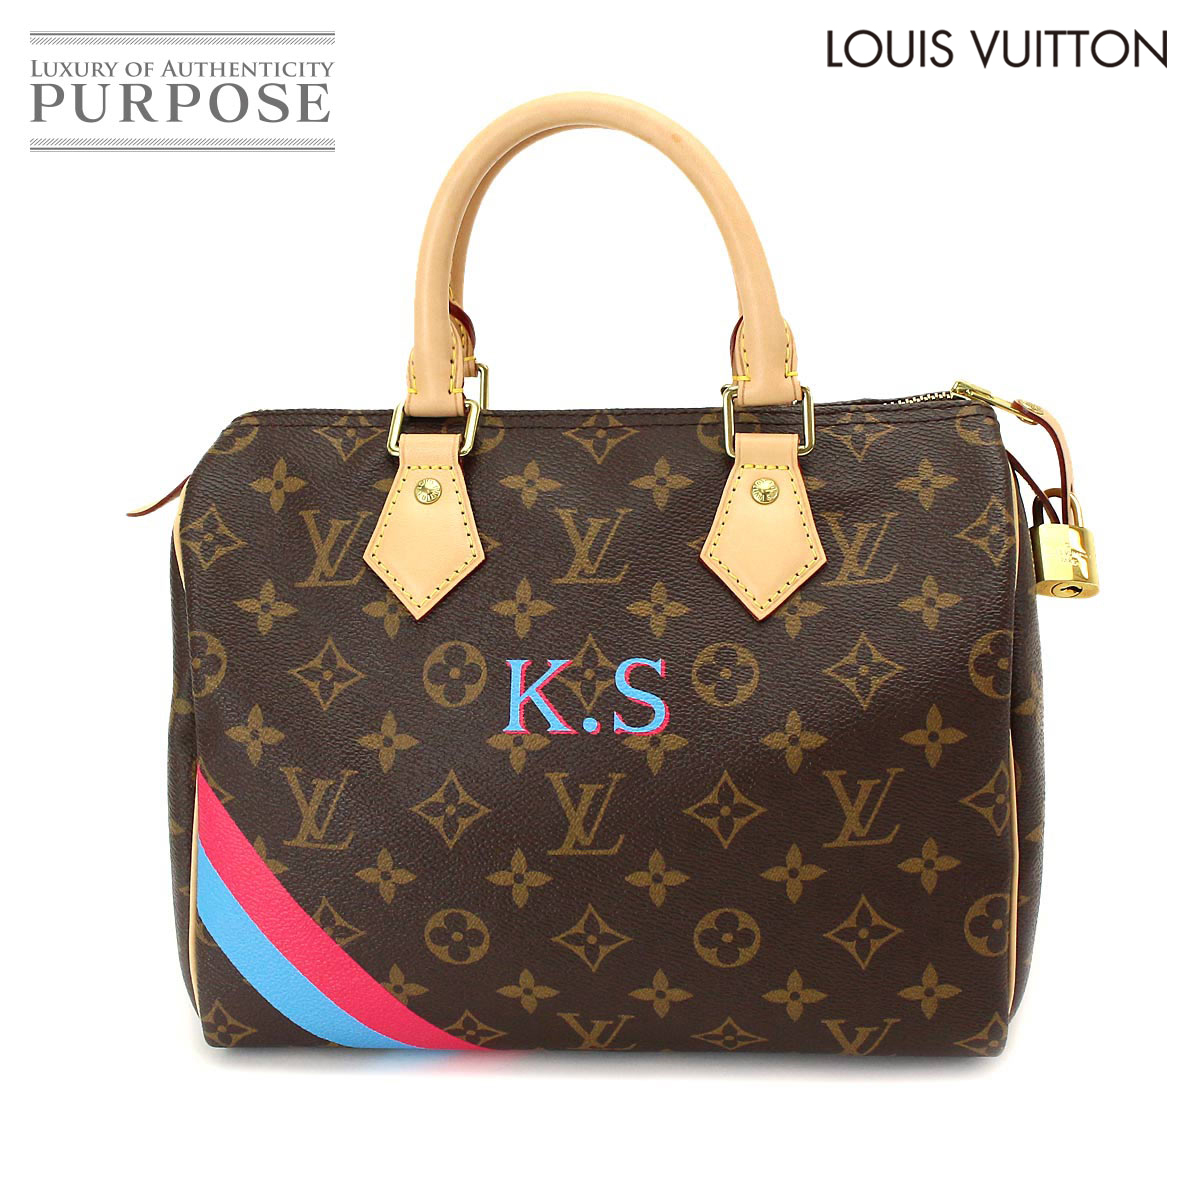 e53bb58a1307  unused display  Louis Vuitton LOUIS VUITTON mon monogram speedy 25 handbag  brown M41528  used  brand